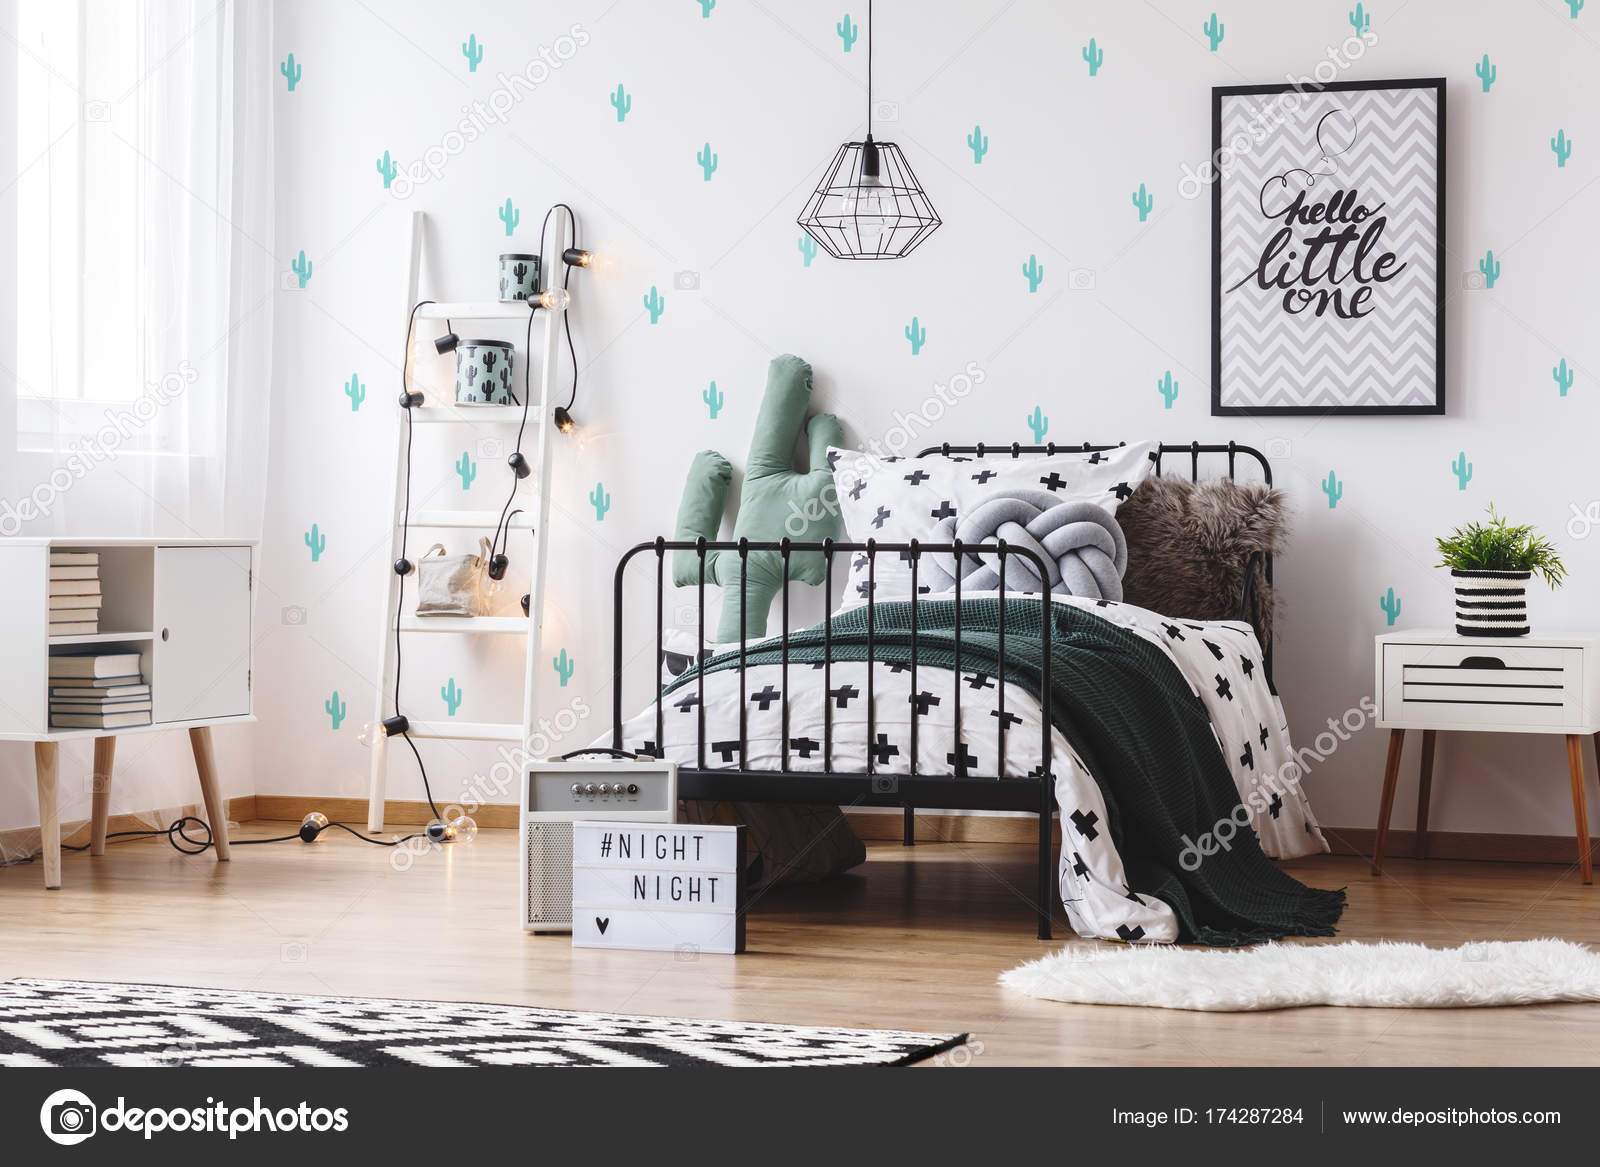 Wallpapers Cute Cactus Bedroom With Cute Cactus Wallpaper Stock Photo C Photographee Eu 174287284